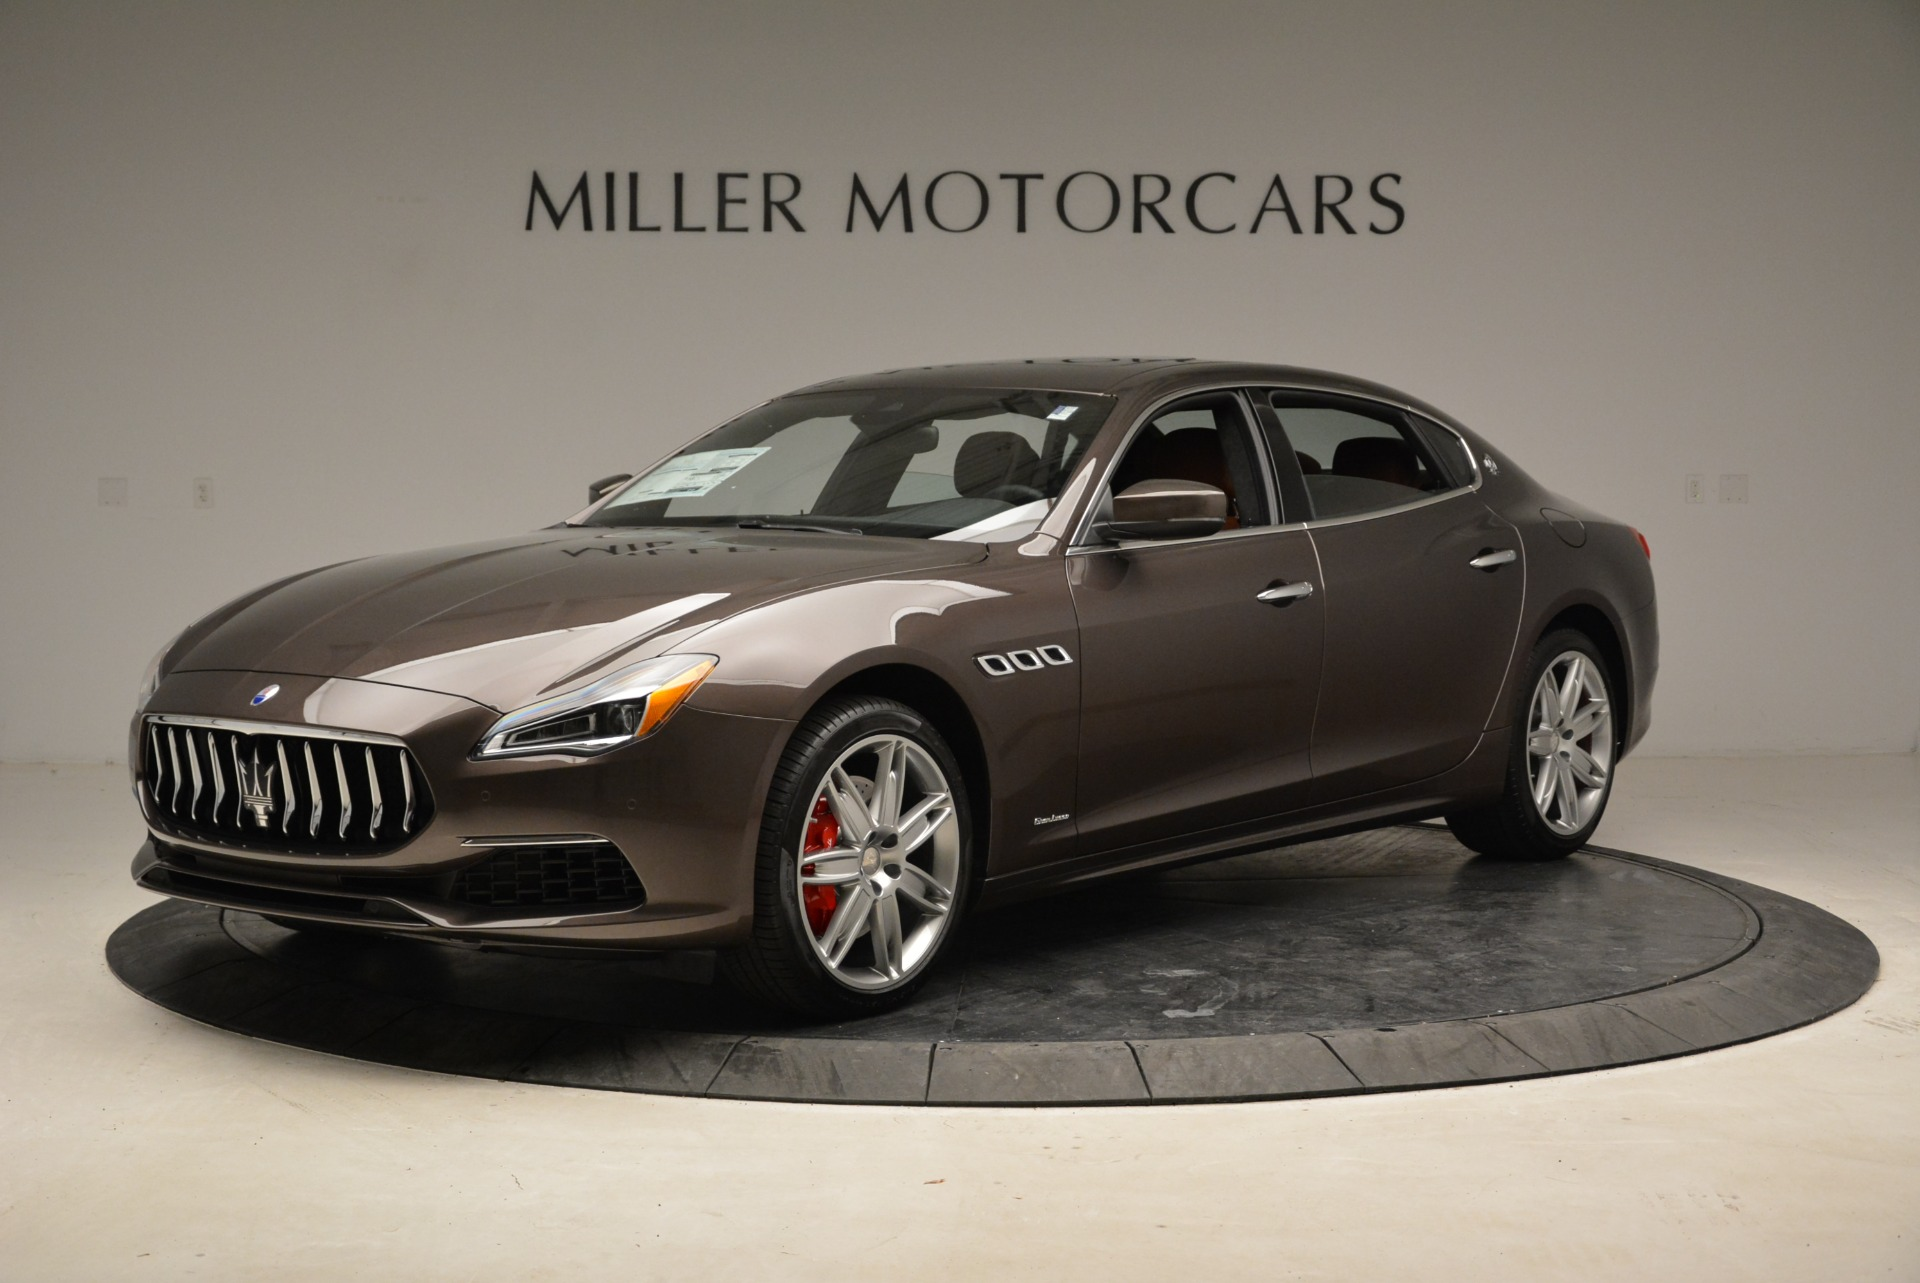 New 2018 Maserati Quattroporte S Q4 GranLusso For Sale In Greenwich, CT 1926_p2